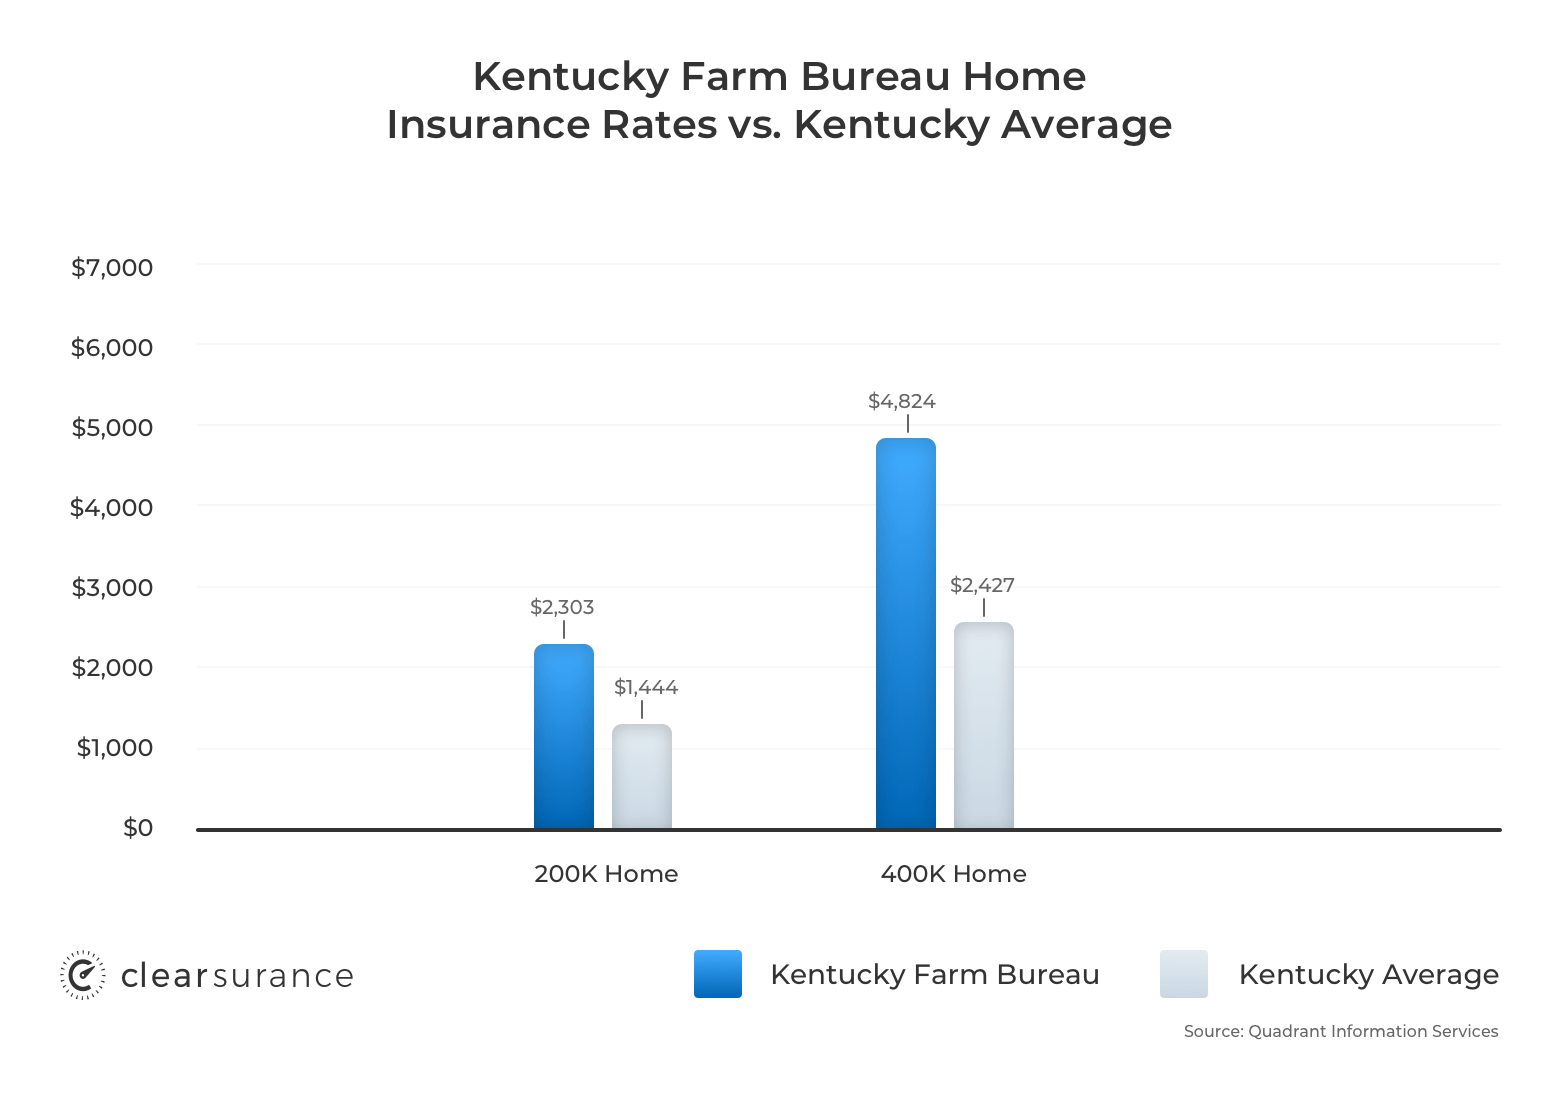 Kentucky Farm Bureau homeowners insurance rates